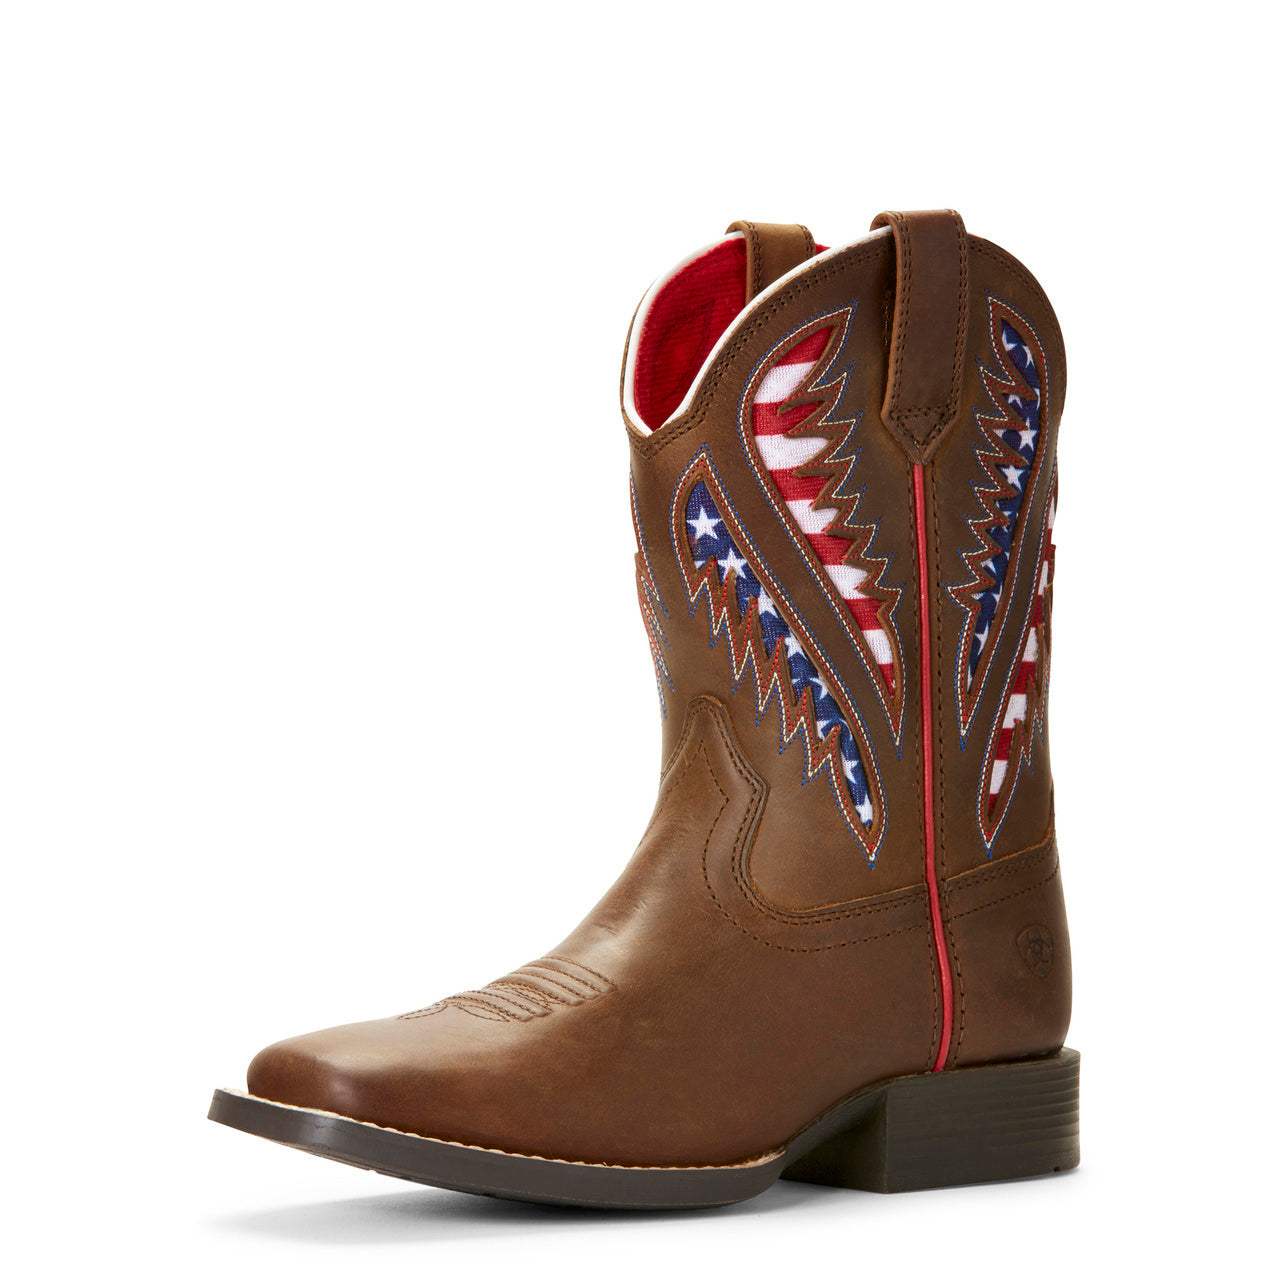 Ariat Kid's Red, White, and Blue